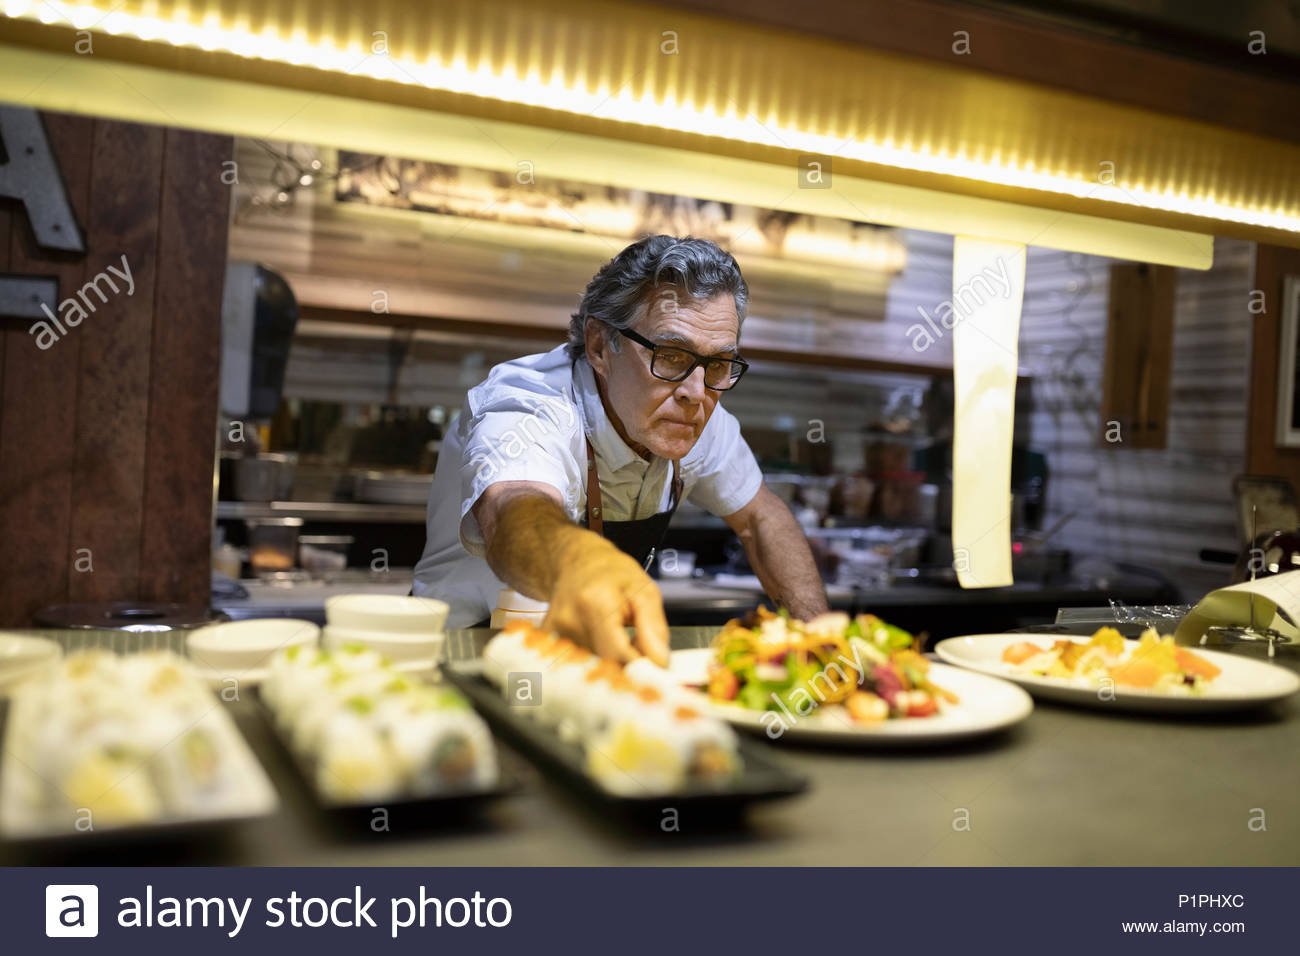 Senior chef plating food in restaurant kitchen - Stock Image